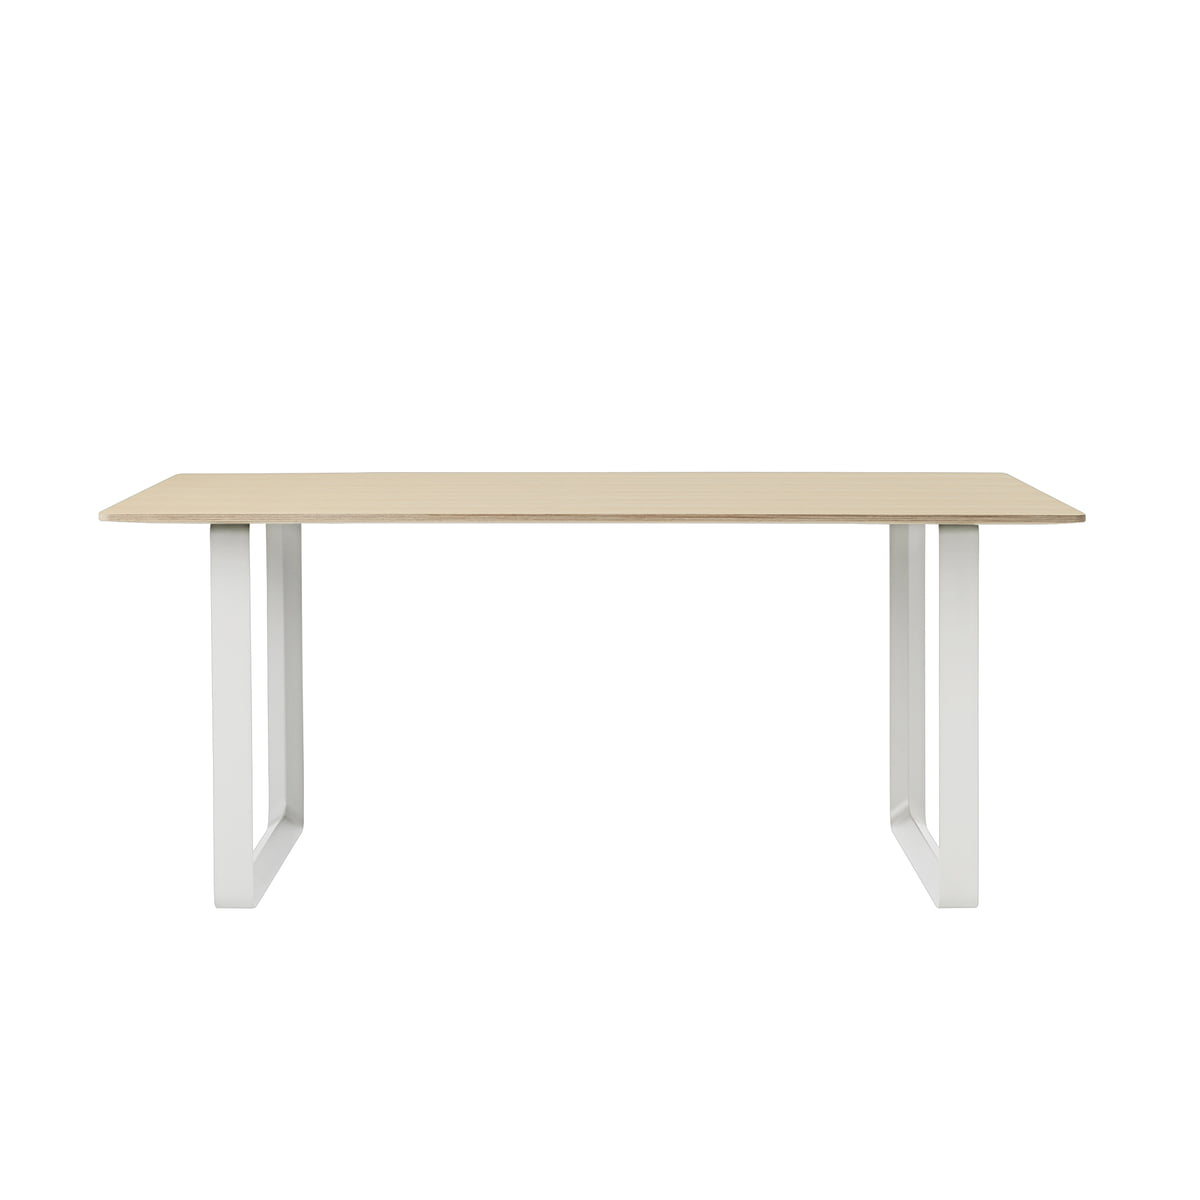 70 70 dining table 170 x 85 cm by muuto connox for 85 dining table